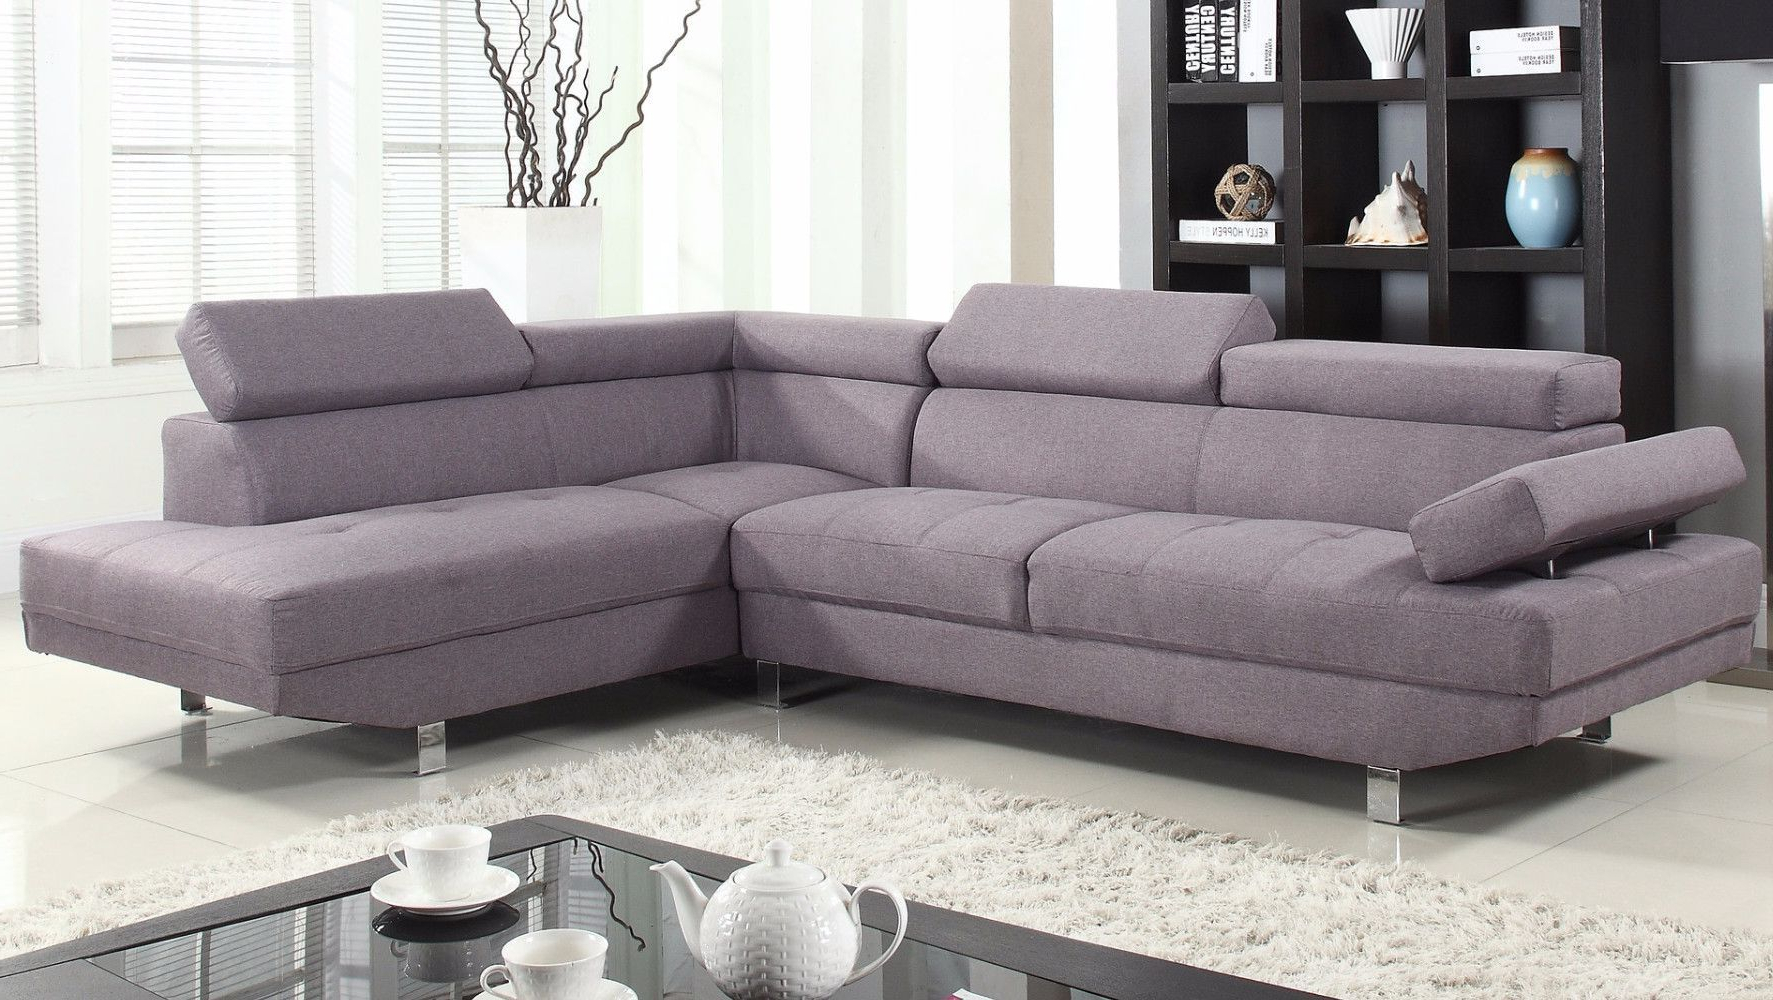 Best And Newest 2 Piece Modern Linen Fabric Right Facing Chaise Sectional In 2Pc Burland Contemporary Chaise Sectional Sofas (View 2 of 25)